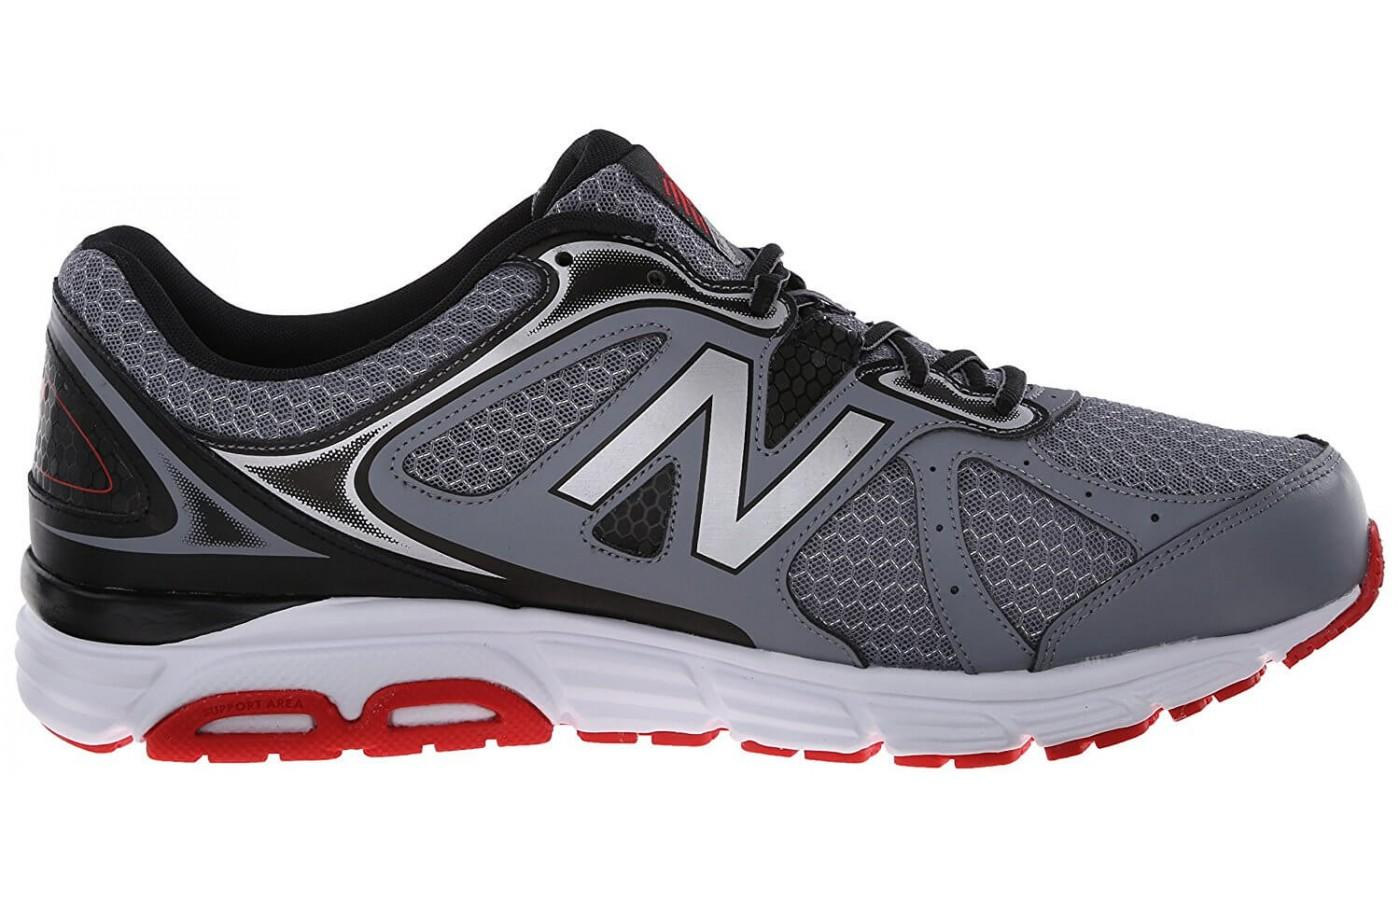 A good perspective of the outer side of the New Balance 560V6.